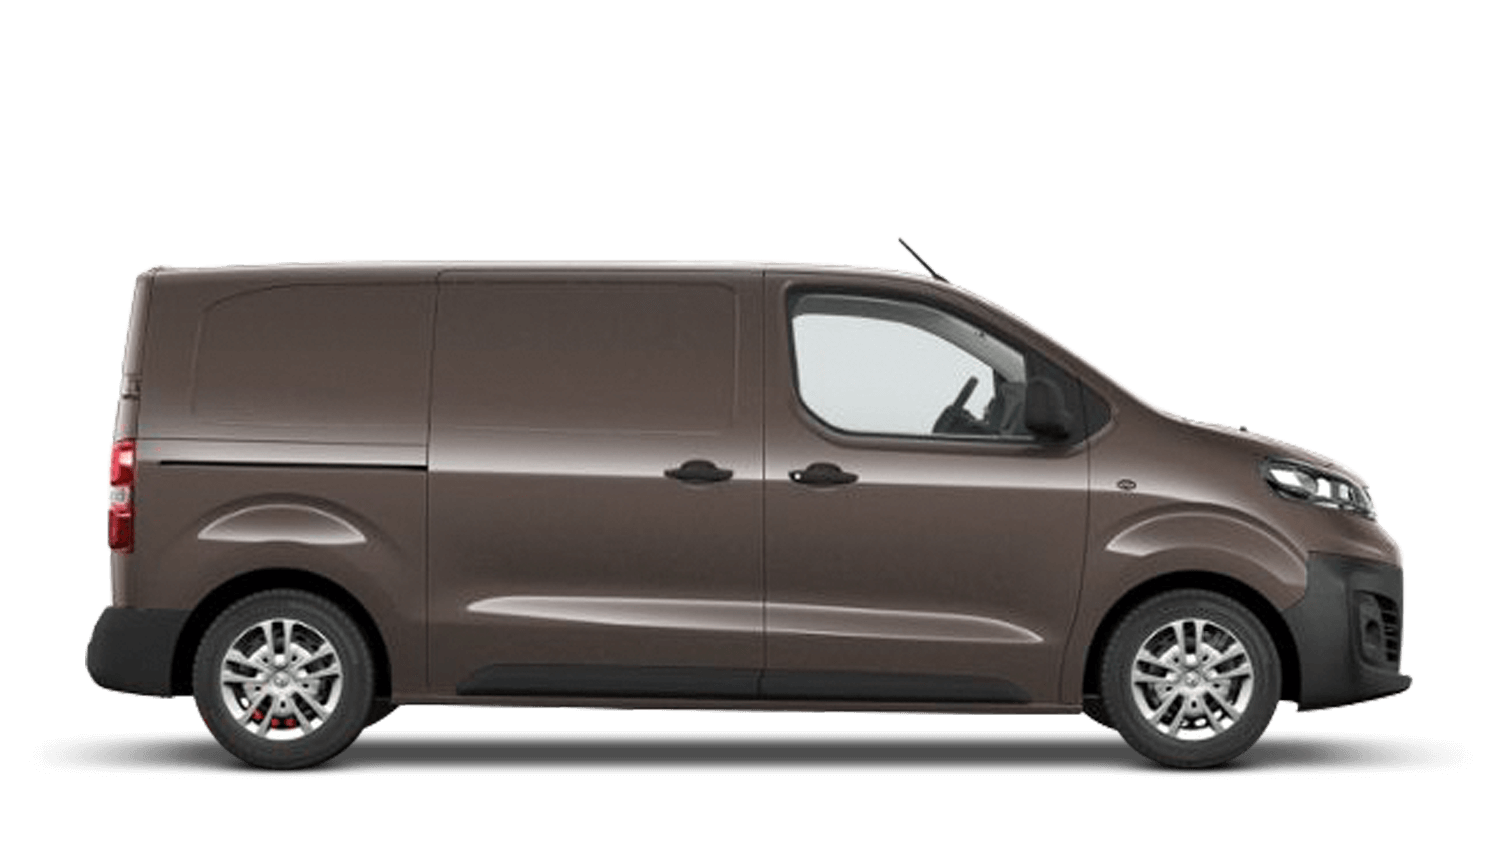 Rich Oak Brown (Metallic) New Vauxhall Vivaro